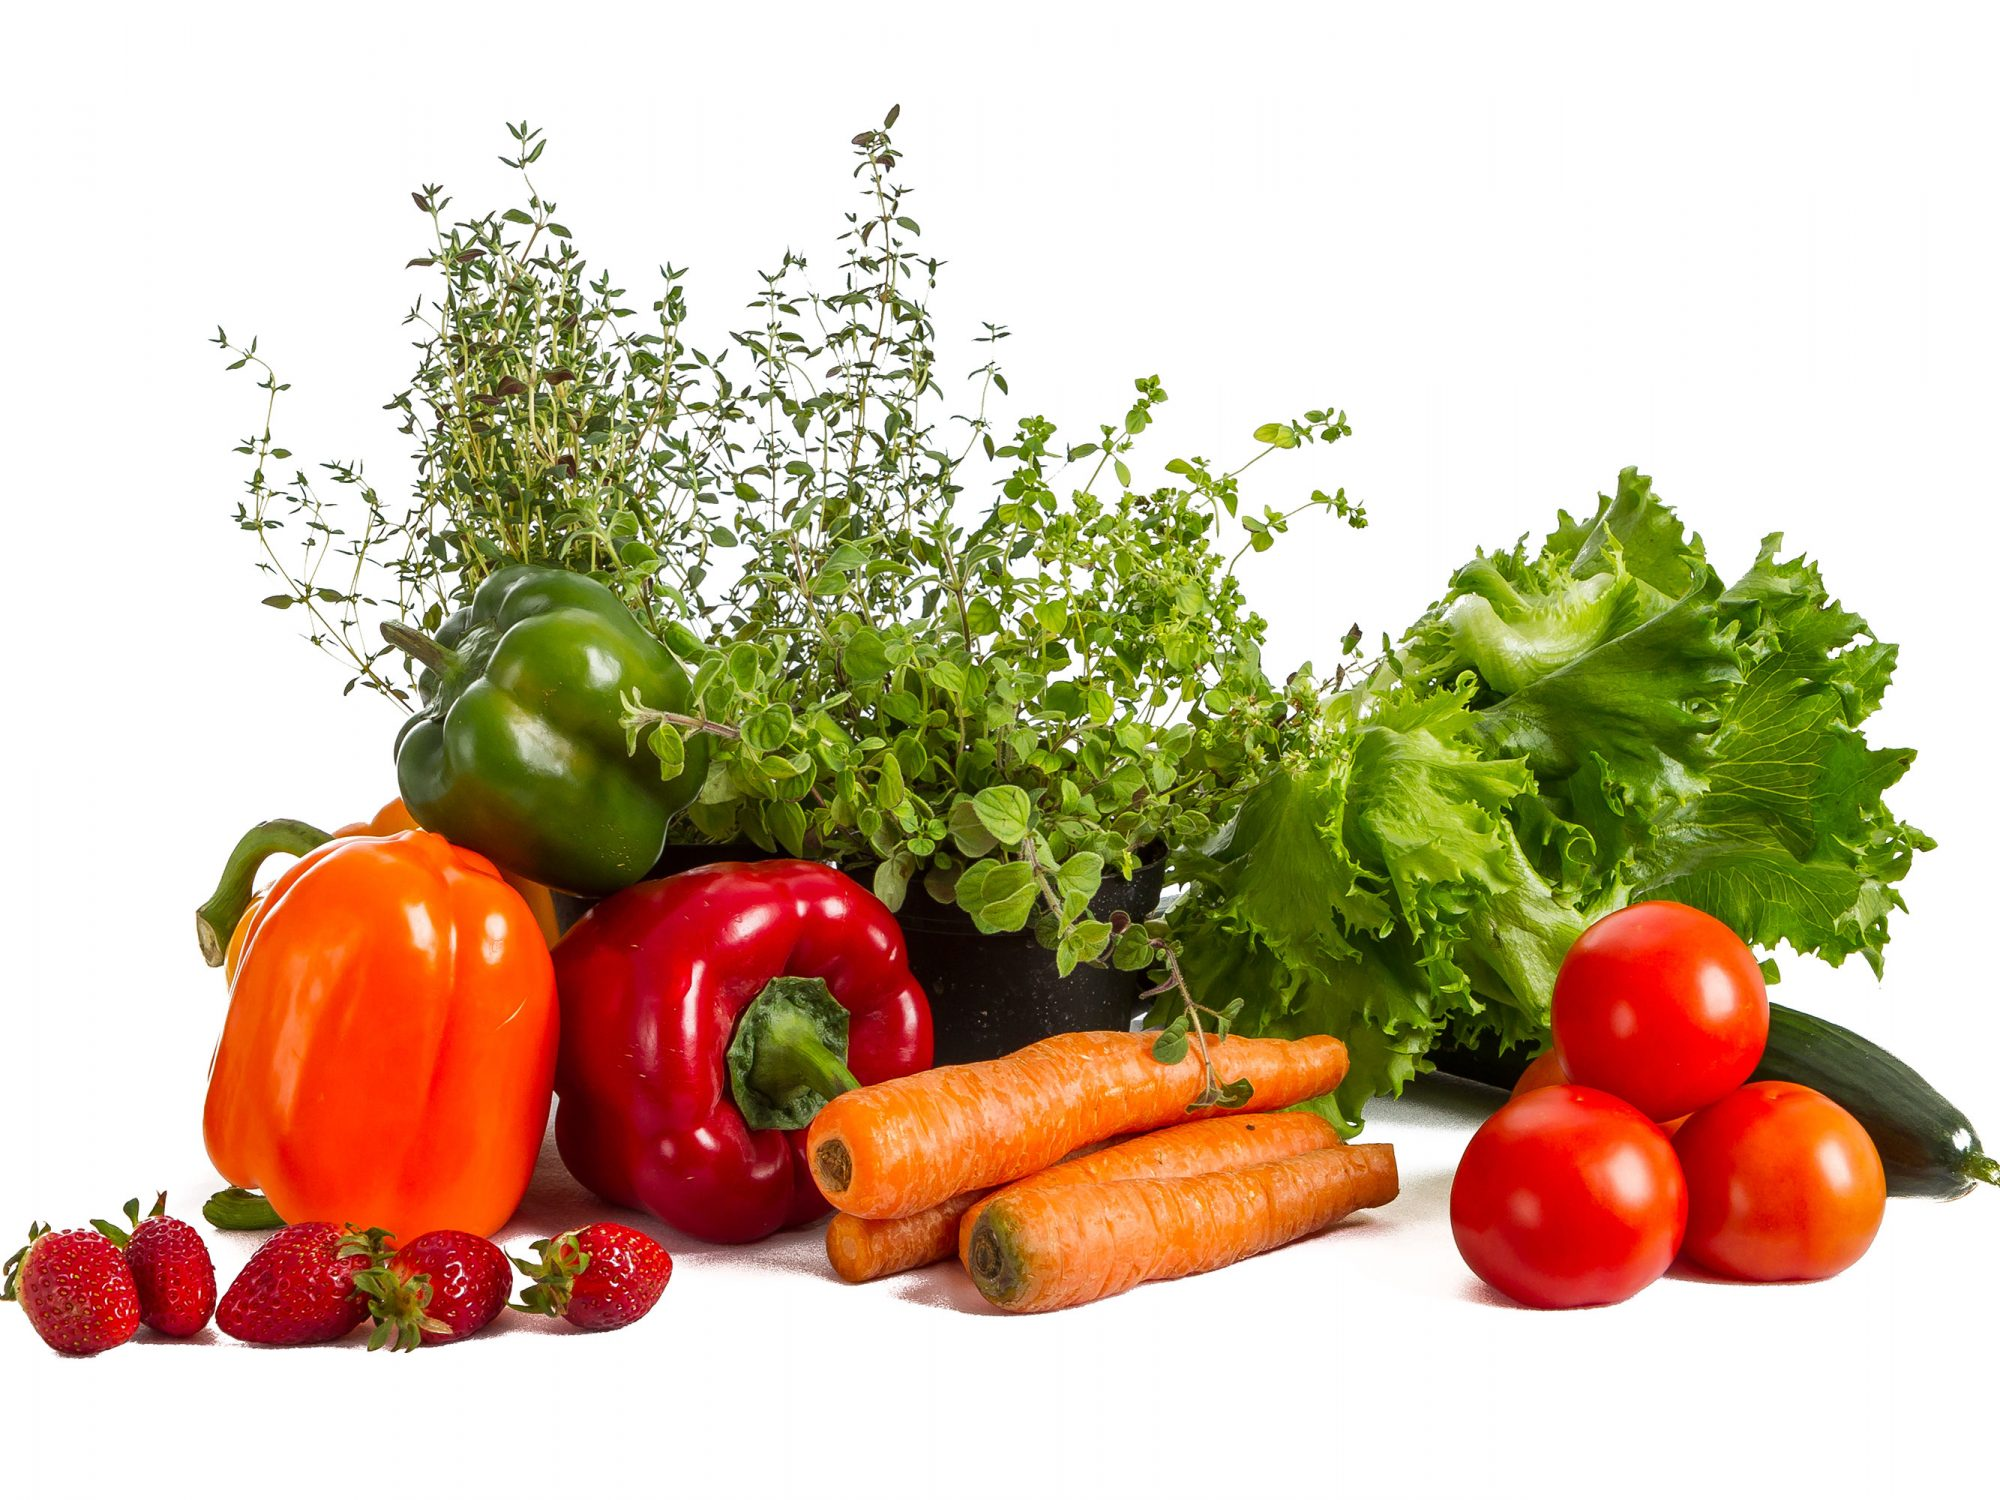 Fruits and vegetables white background